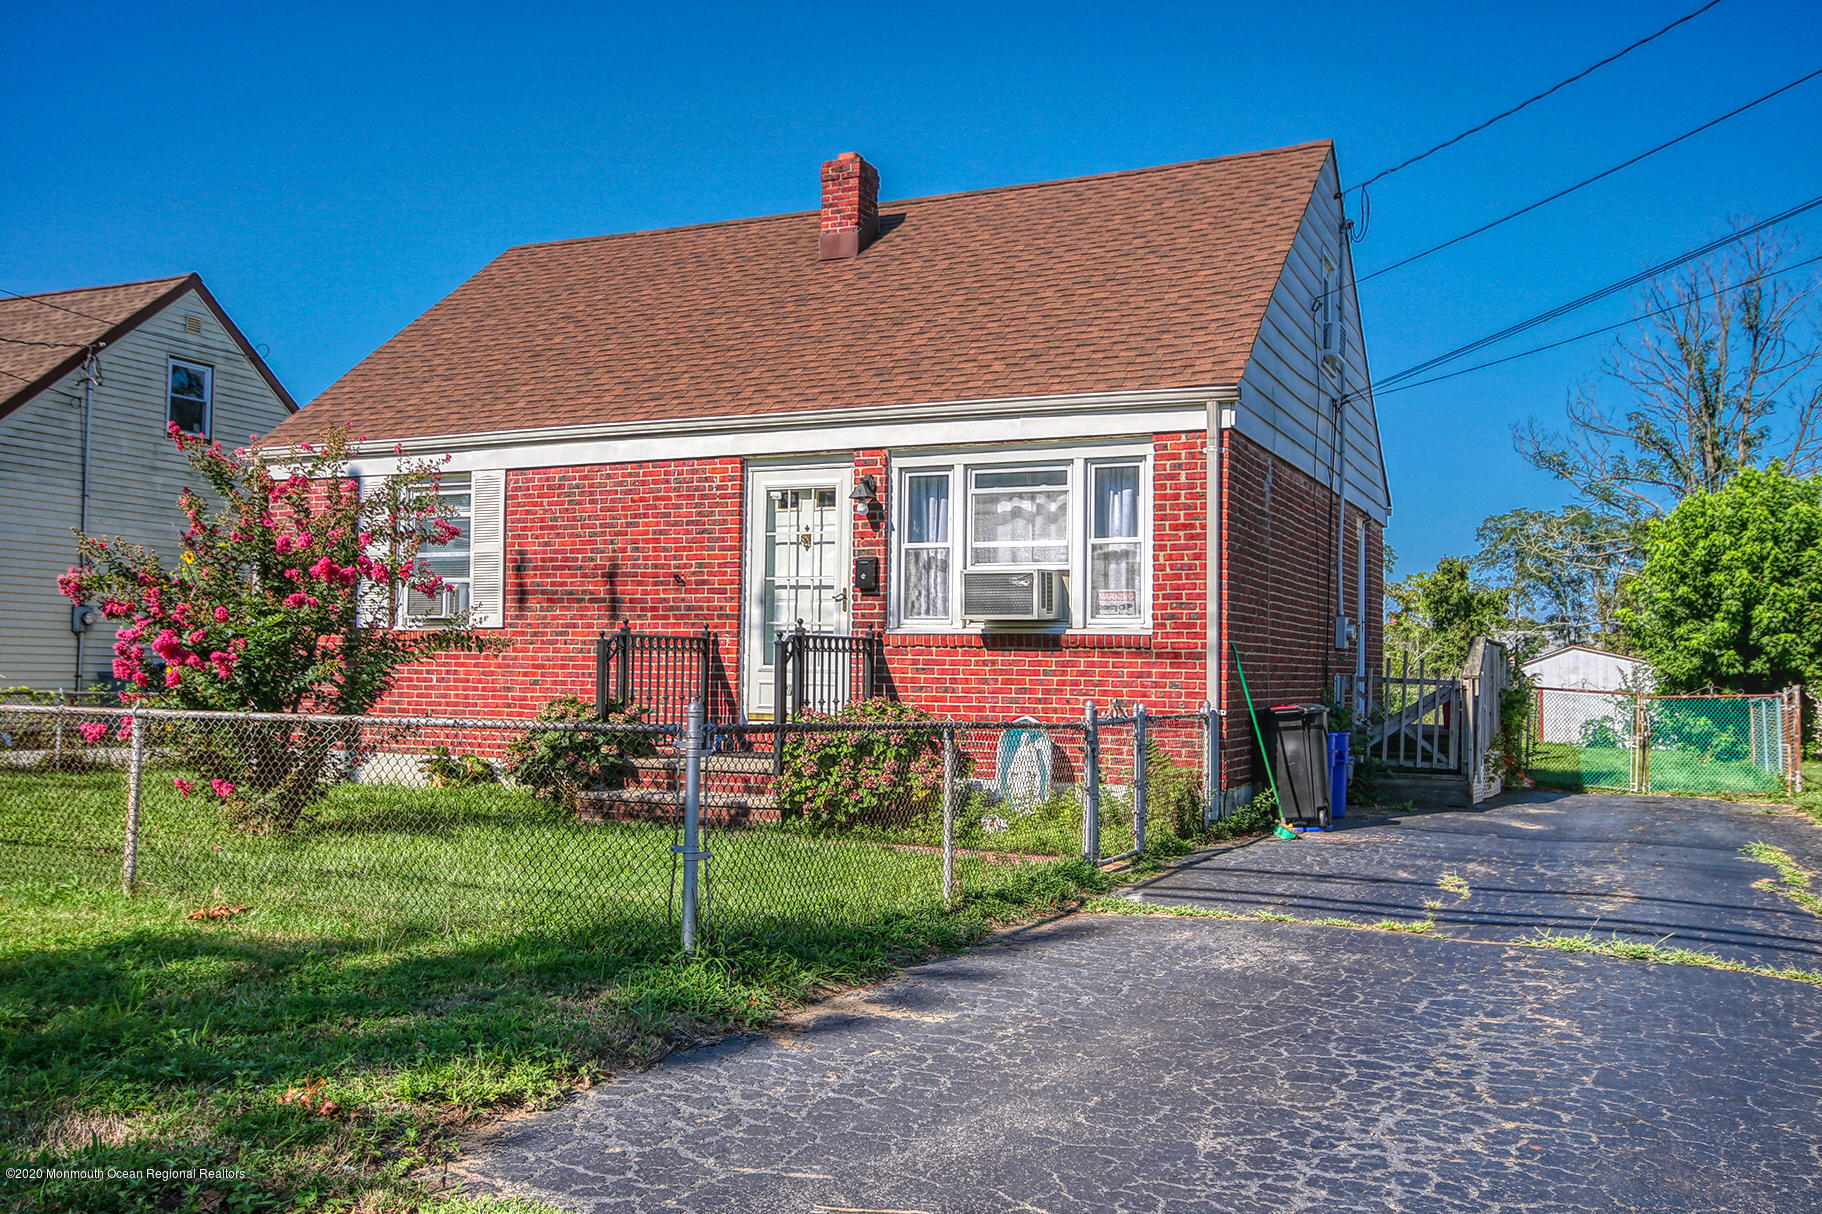 315 Poole Avenue, Union Beach, New Jersey 07735, 3 Bedrooms Bedrooms, ,2 BathroomsBathrooms,Single Family,For Sale,315 Poole Avenue,1.5,22029778